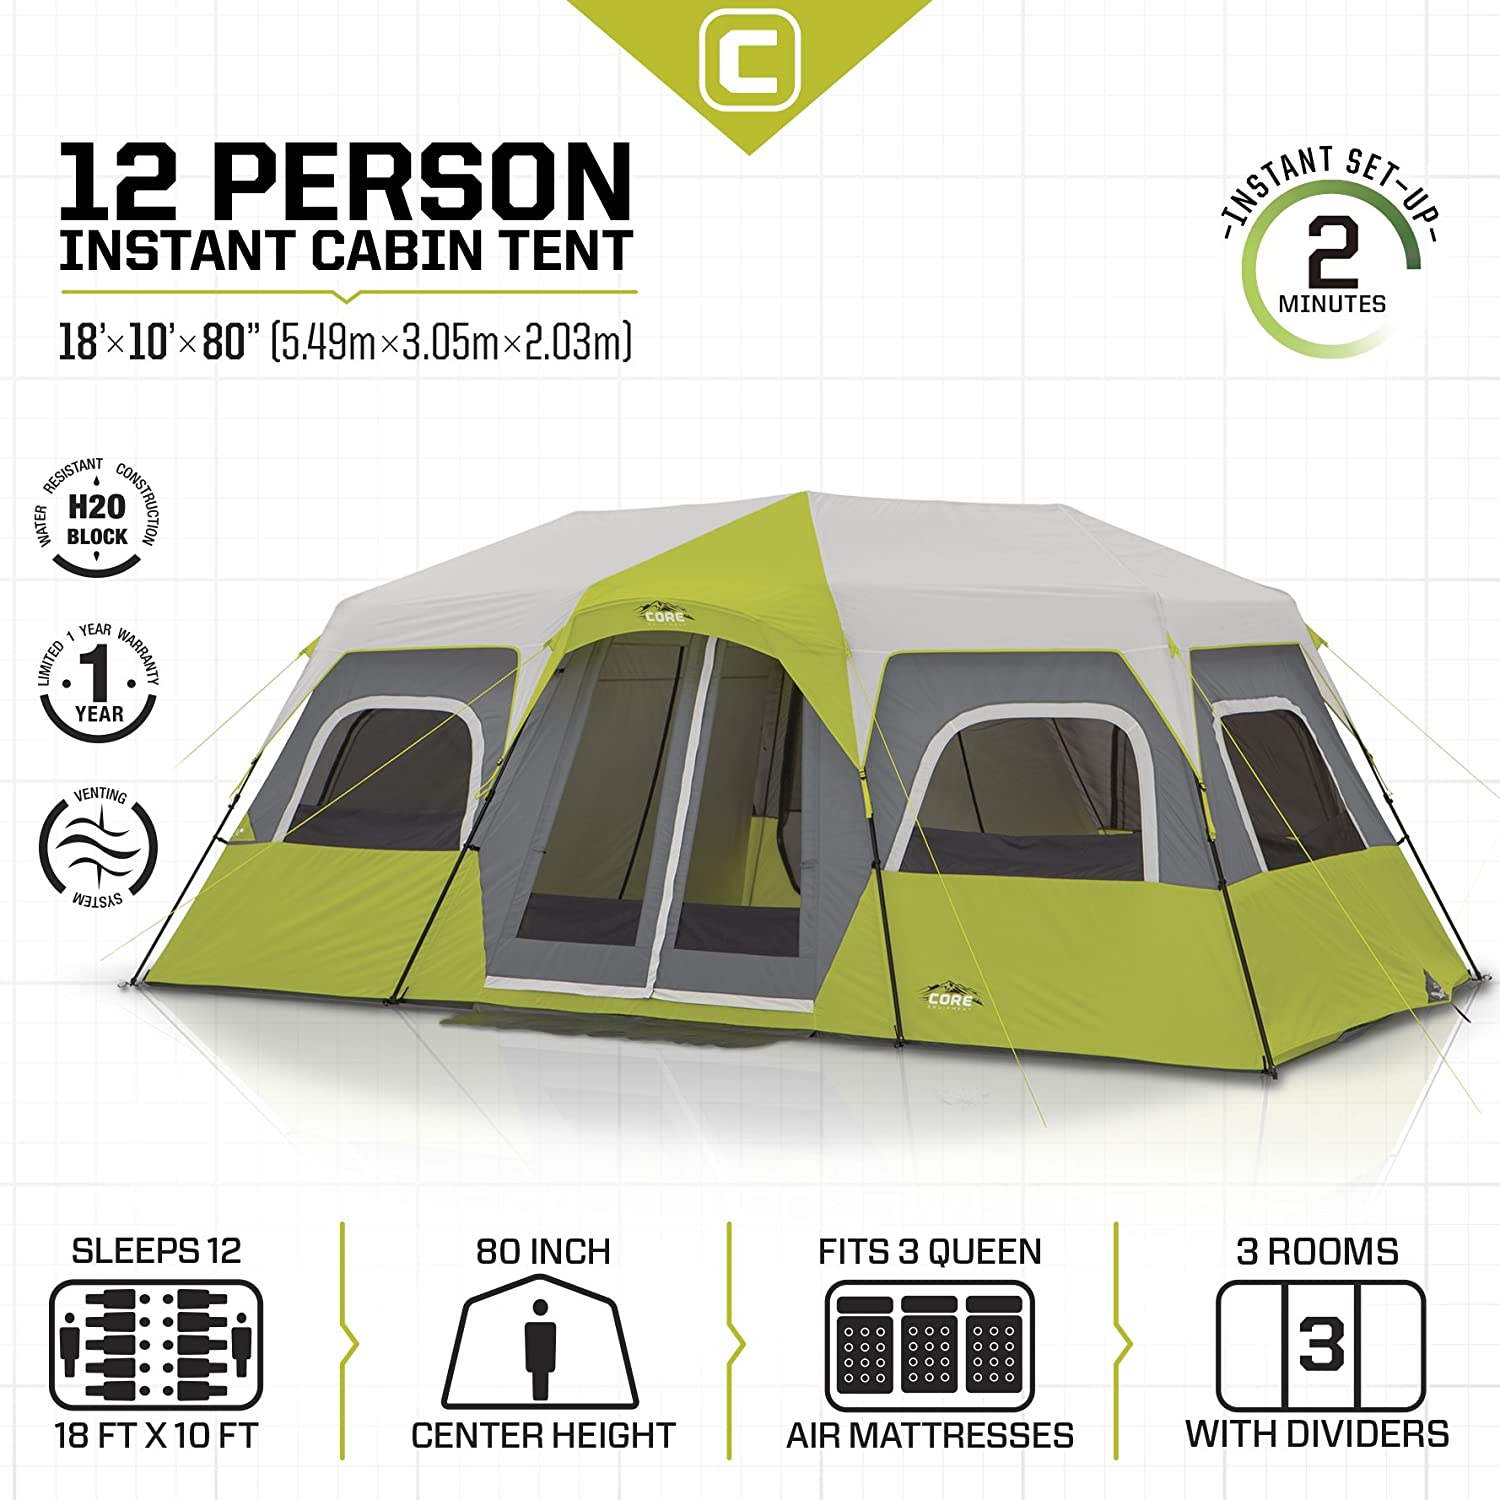 CORE 12 Person Instant Cabin Tent - 18' x 10' - 12 person cabin tent